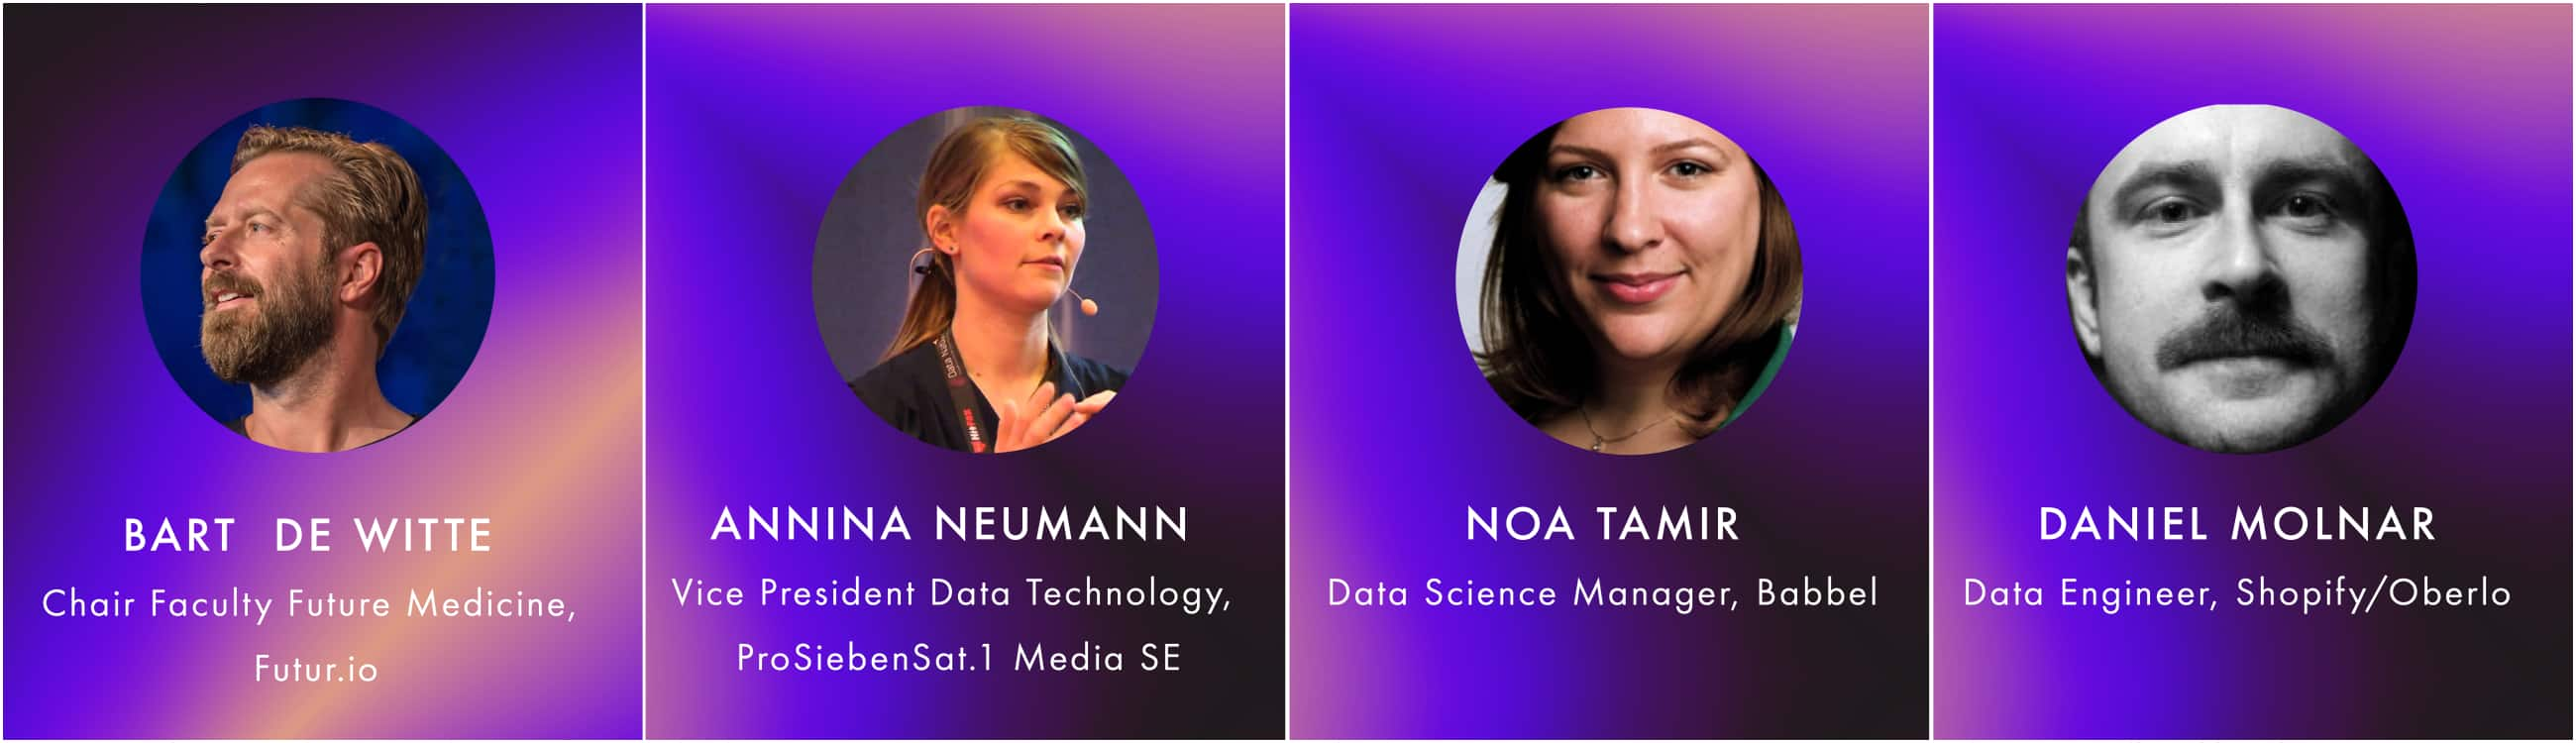 First Speakers Announced for Data Natives 2018, The Tech